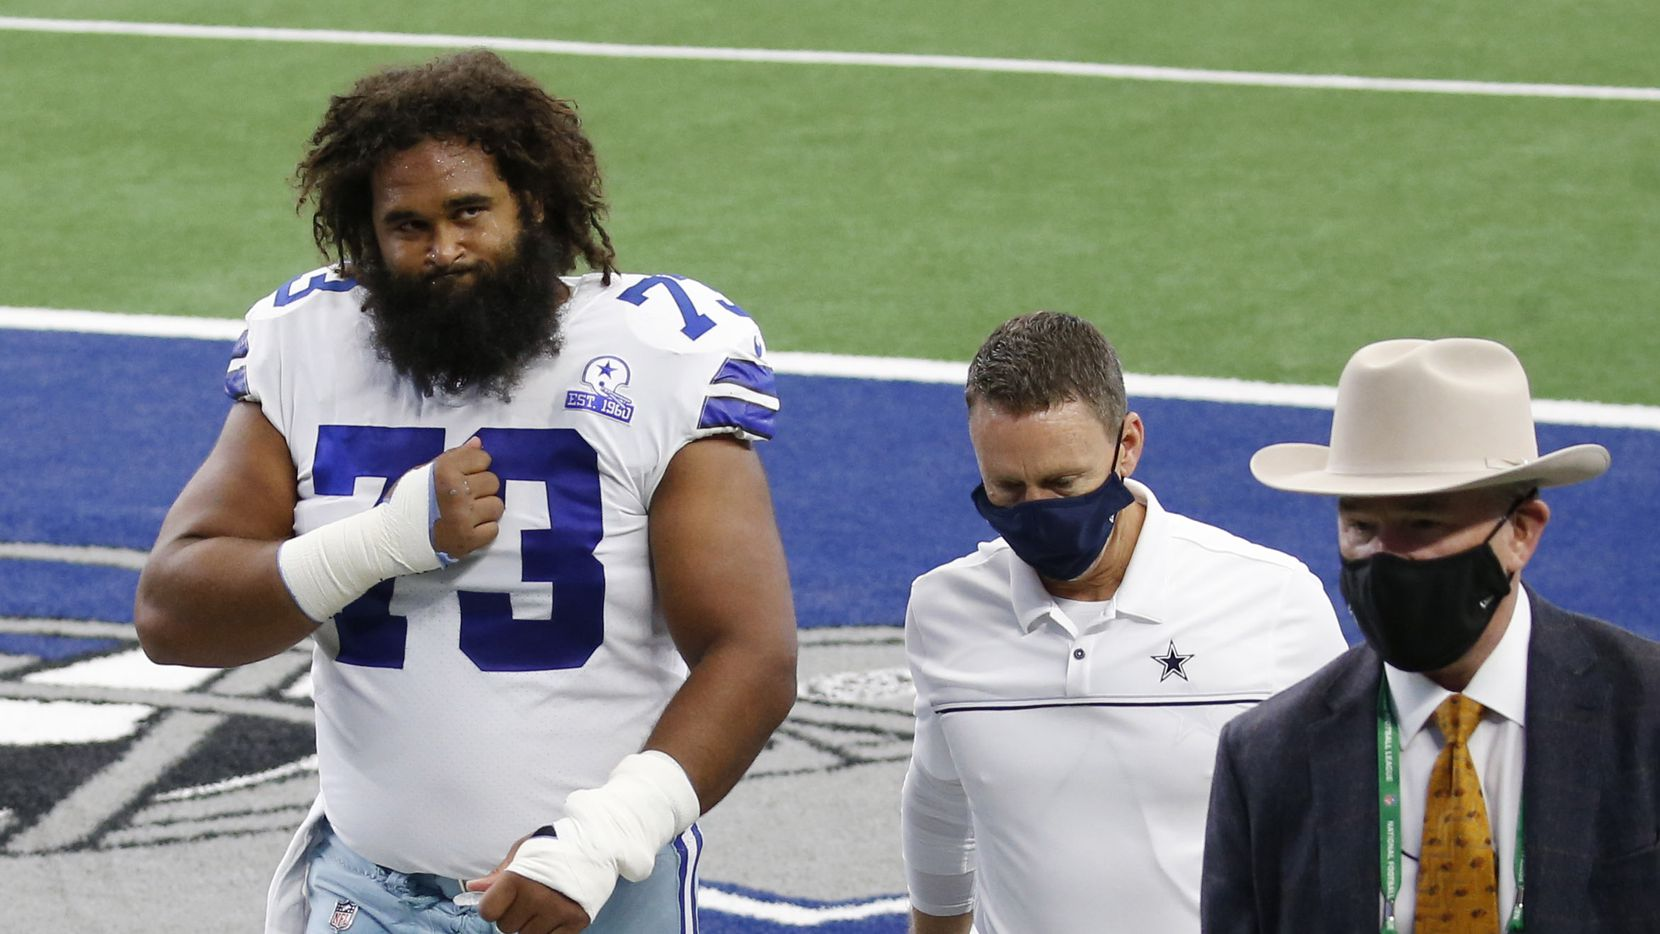 Dallas Cowboys center Joe Looney (73) signals towards his family in the stands as he exits the field with the Dallas Cowboys medical team in a game against the Cleveland Browns during the first half of play at AT&T Stadium in Arlington, Texas on Saturday, October 4, 2020.